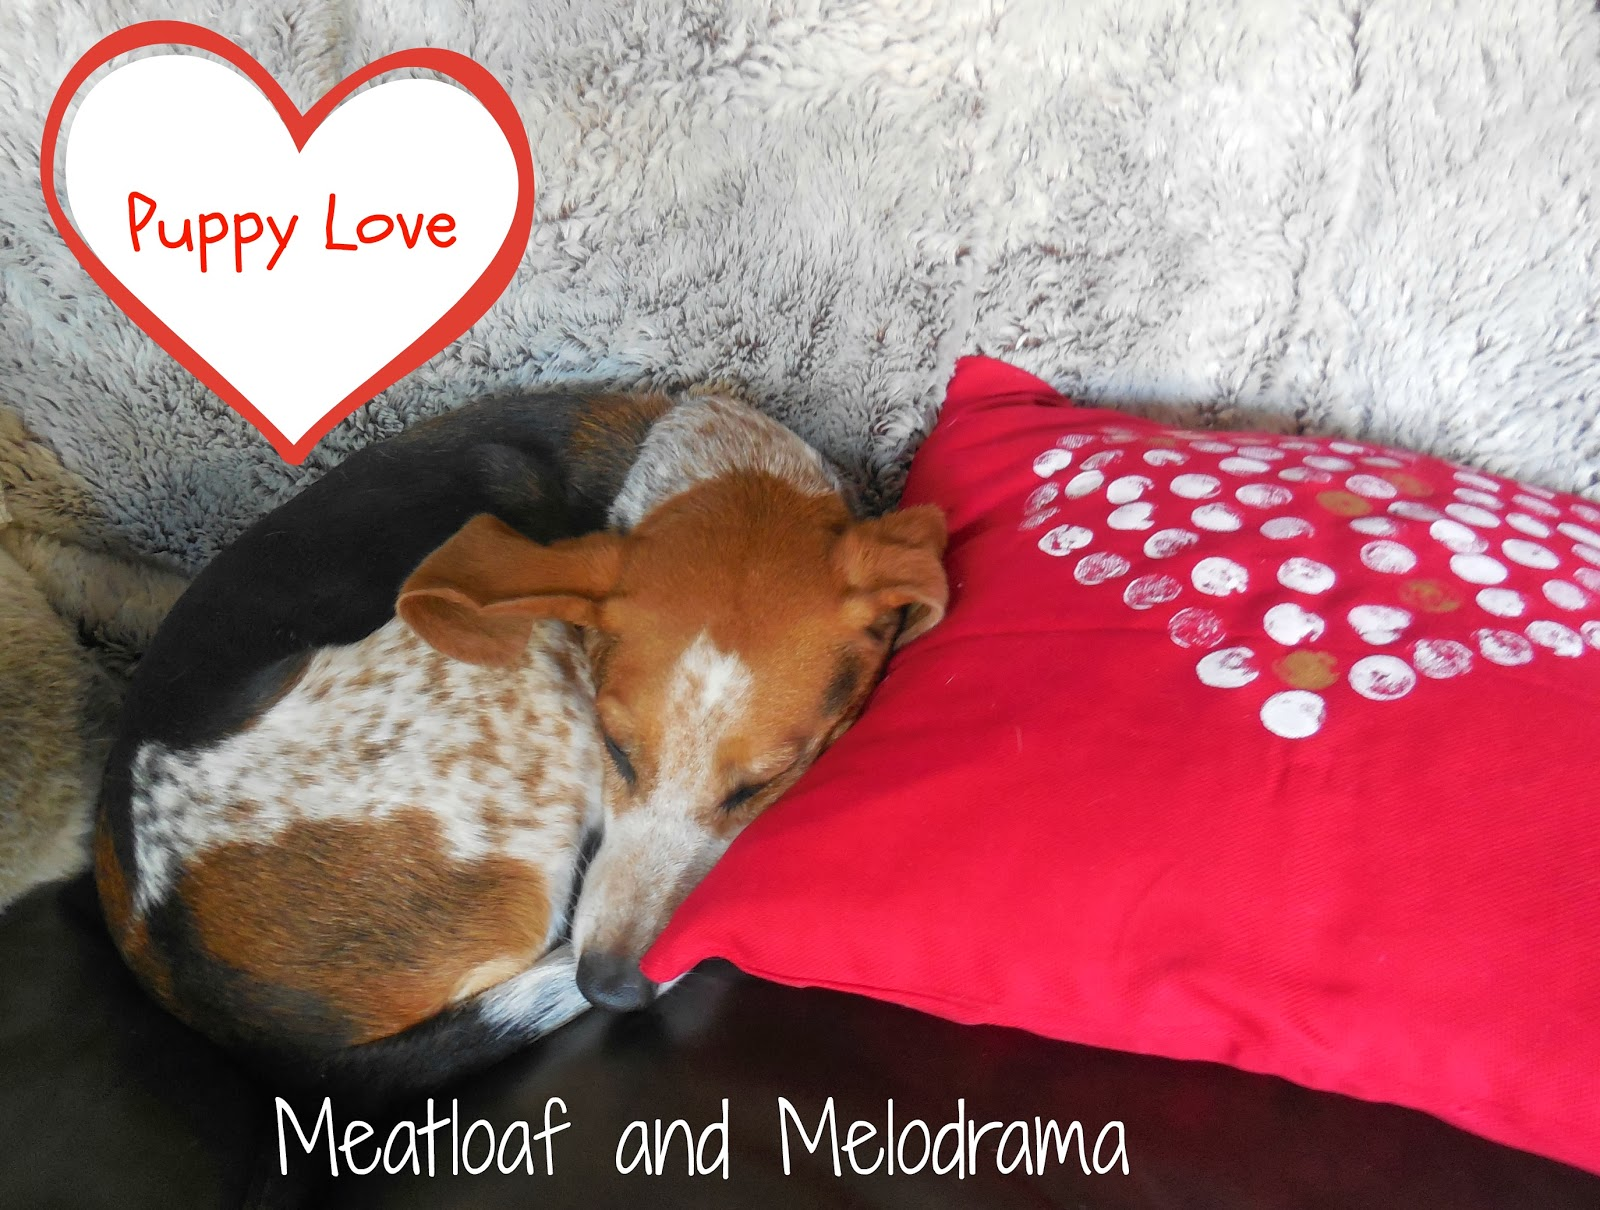 dog with heart pillow, puppy love